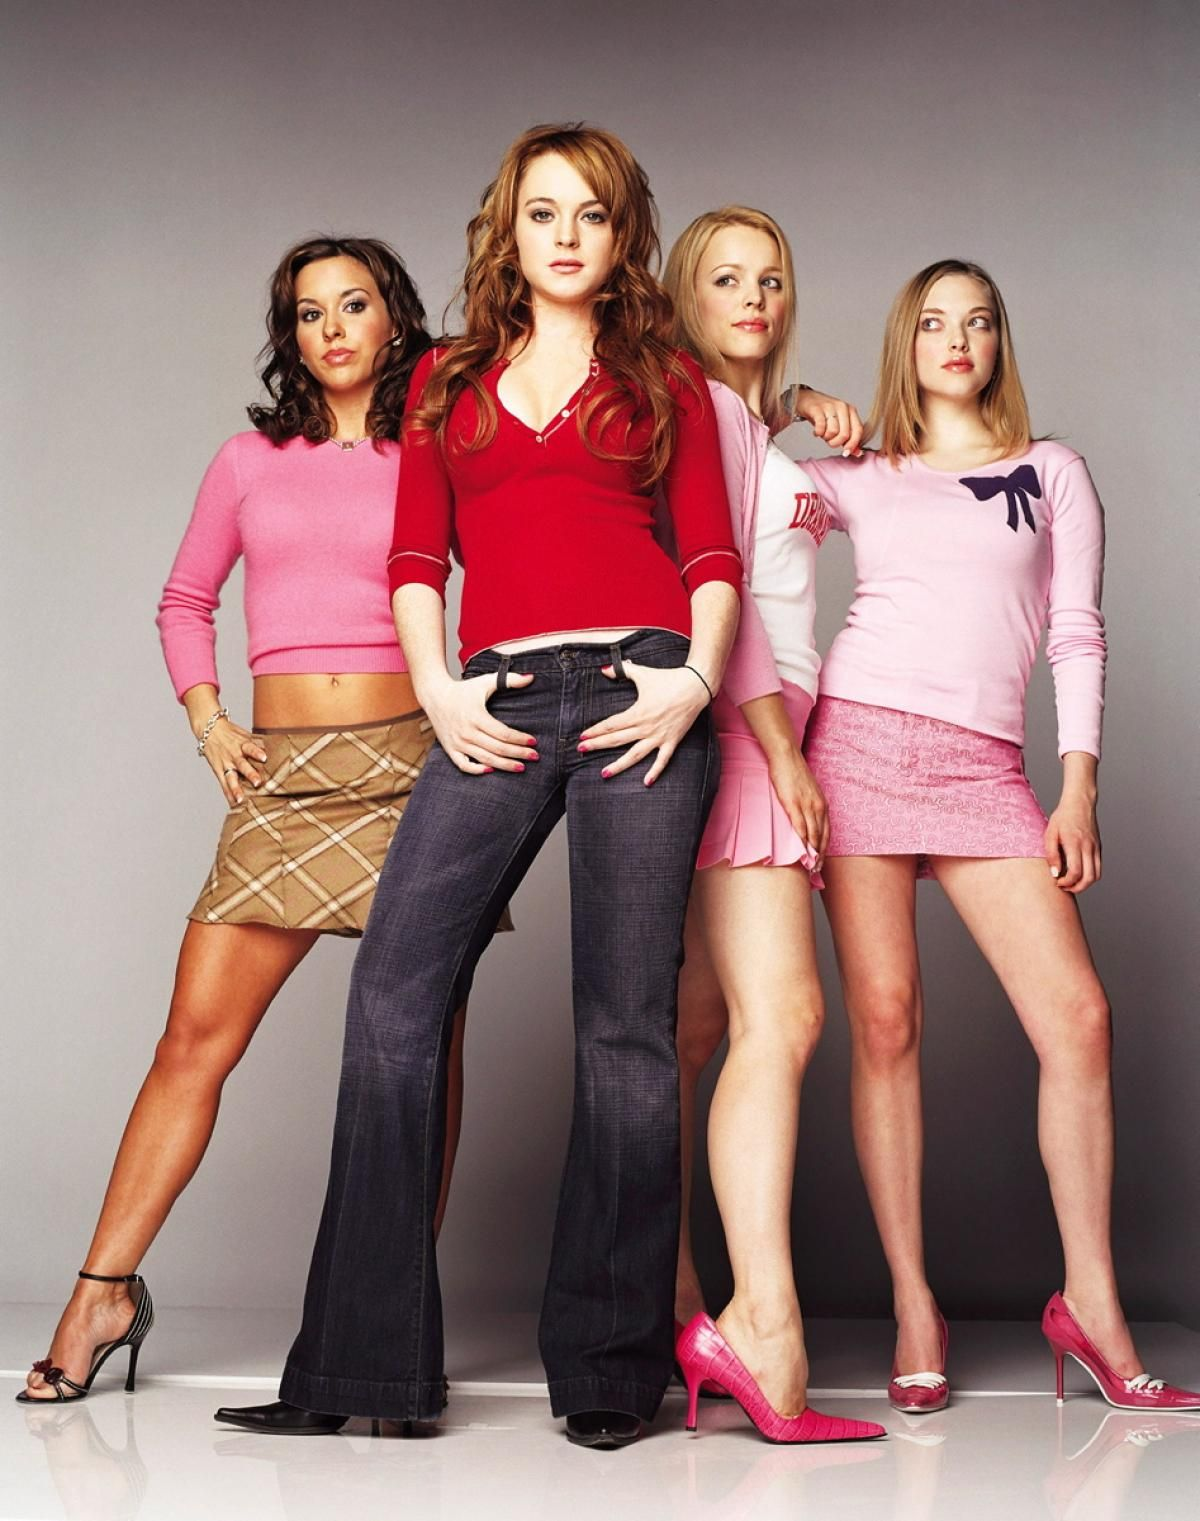 The Mean Girls reunion photos are absolutely amazing